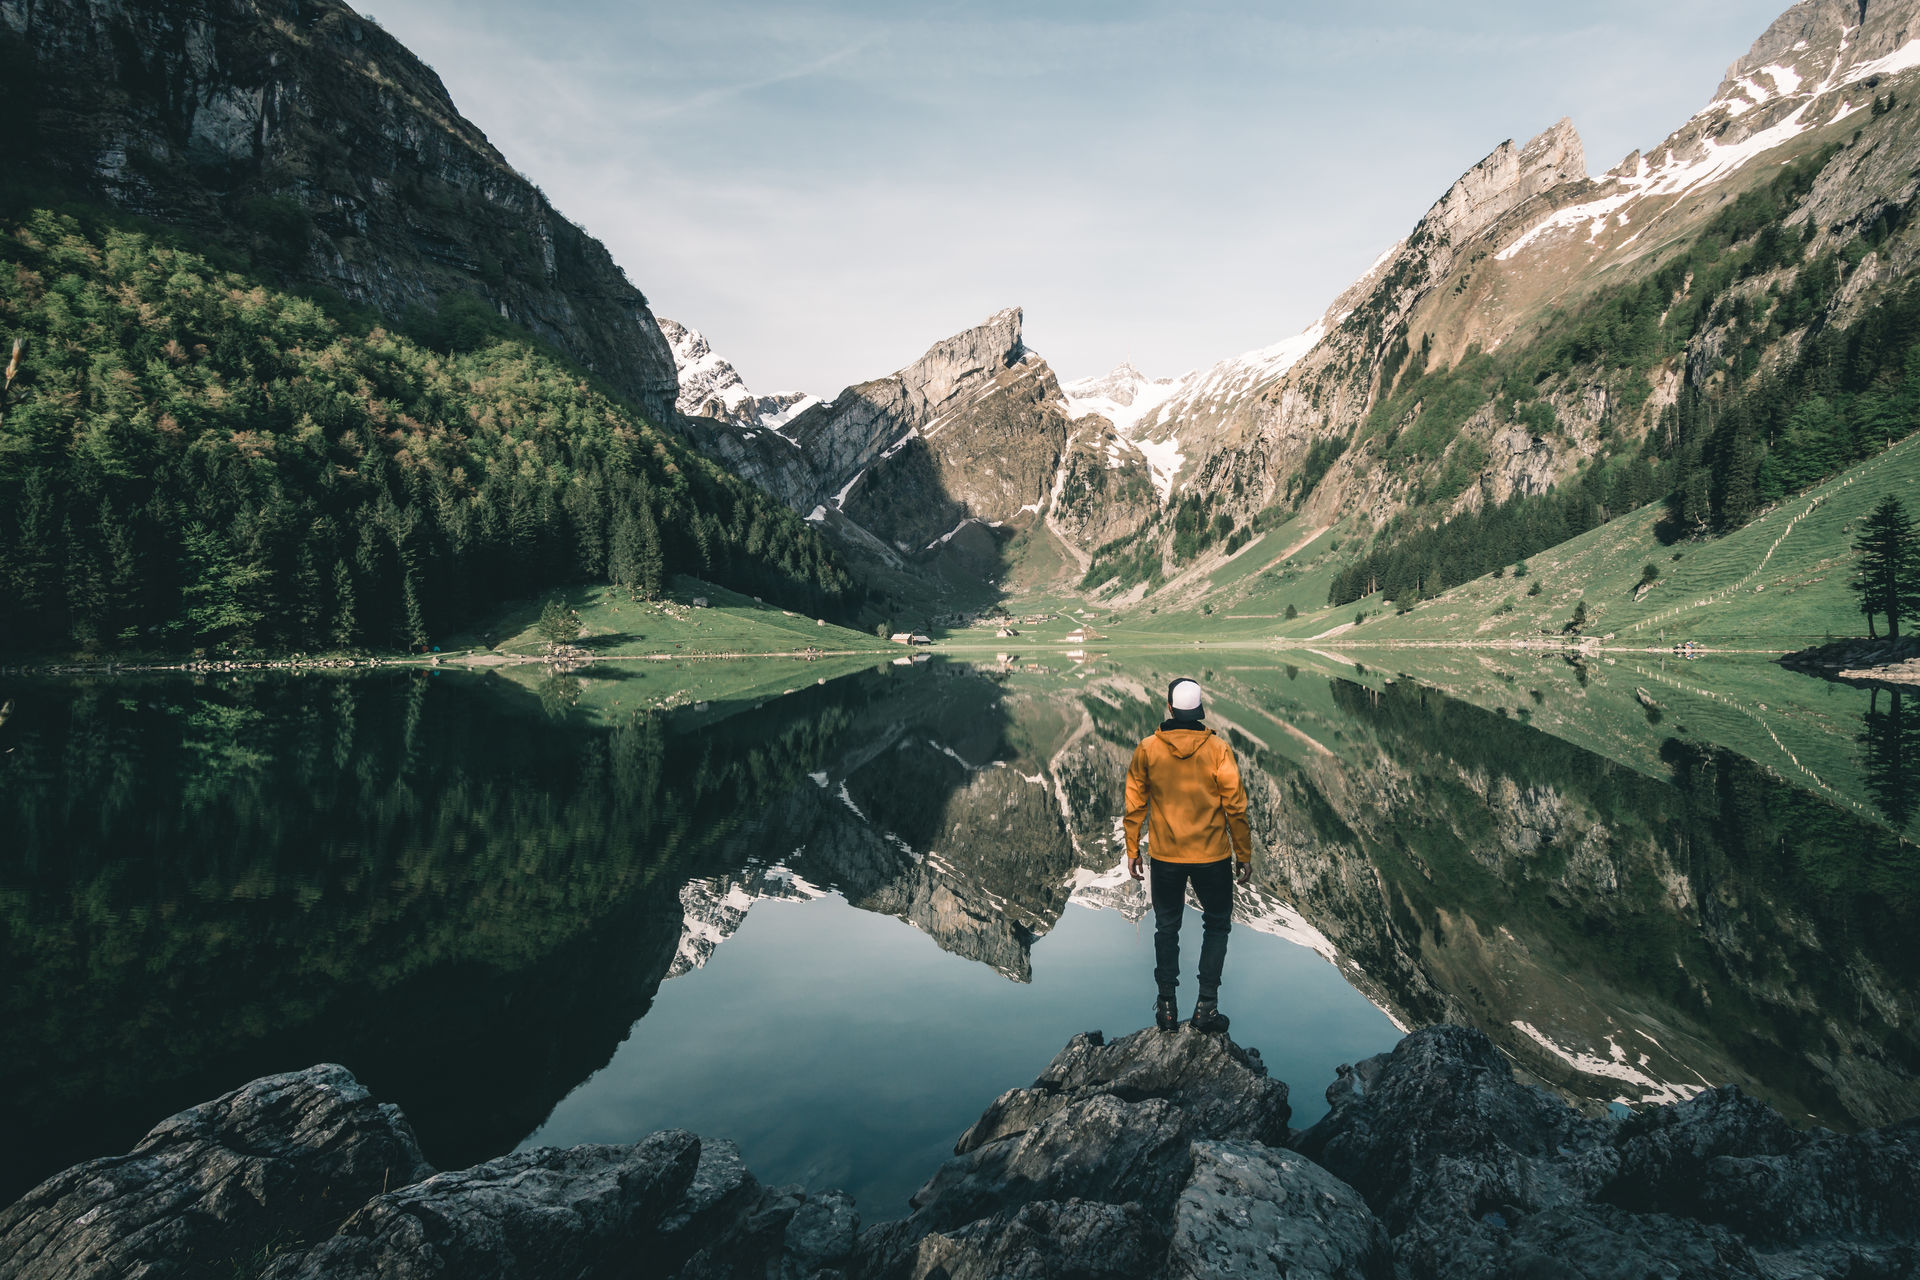 Man in yellow jacket standing at the mountain lake on a calm morning adventure alps appenzell day explore Hiking lake leisure activity lifestyles mountain mountain range mountains Nature Nature one person outdoors scenics Seealpsee Standing swiss swiss alps switzerland tranquil scene Tranquility Yellow jacket The Great Outdoors - 2017 EyeEm Awards The Great Outdoors - 2017 EyeEm Awards Connected by Travel